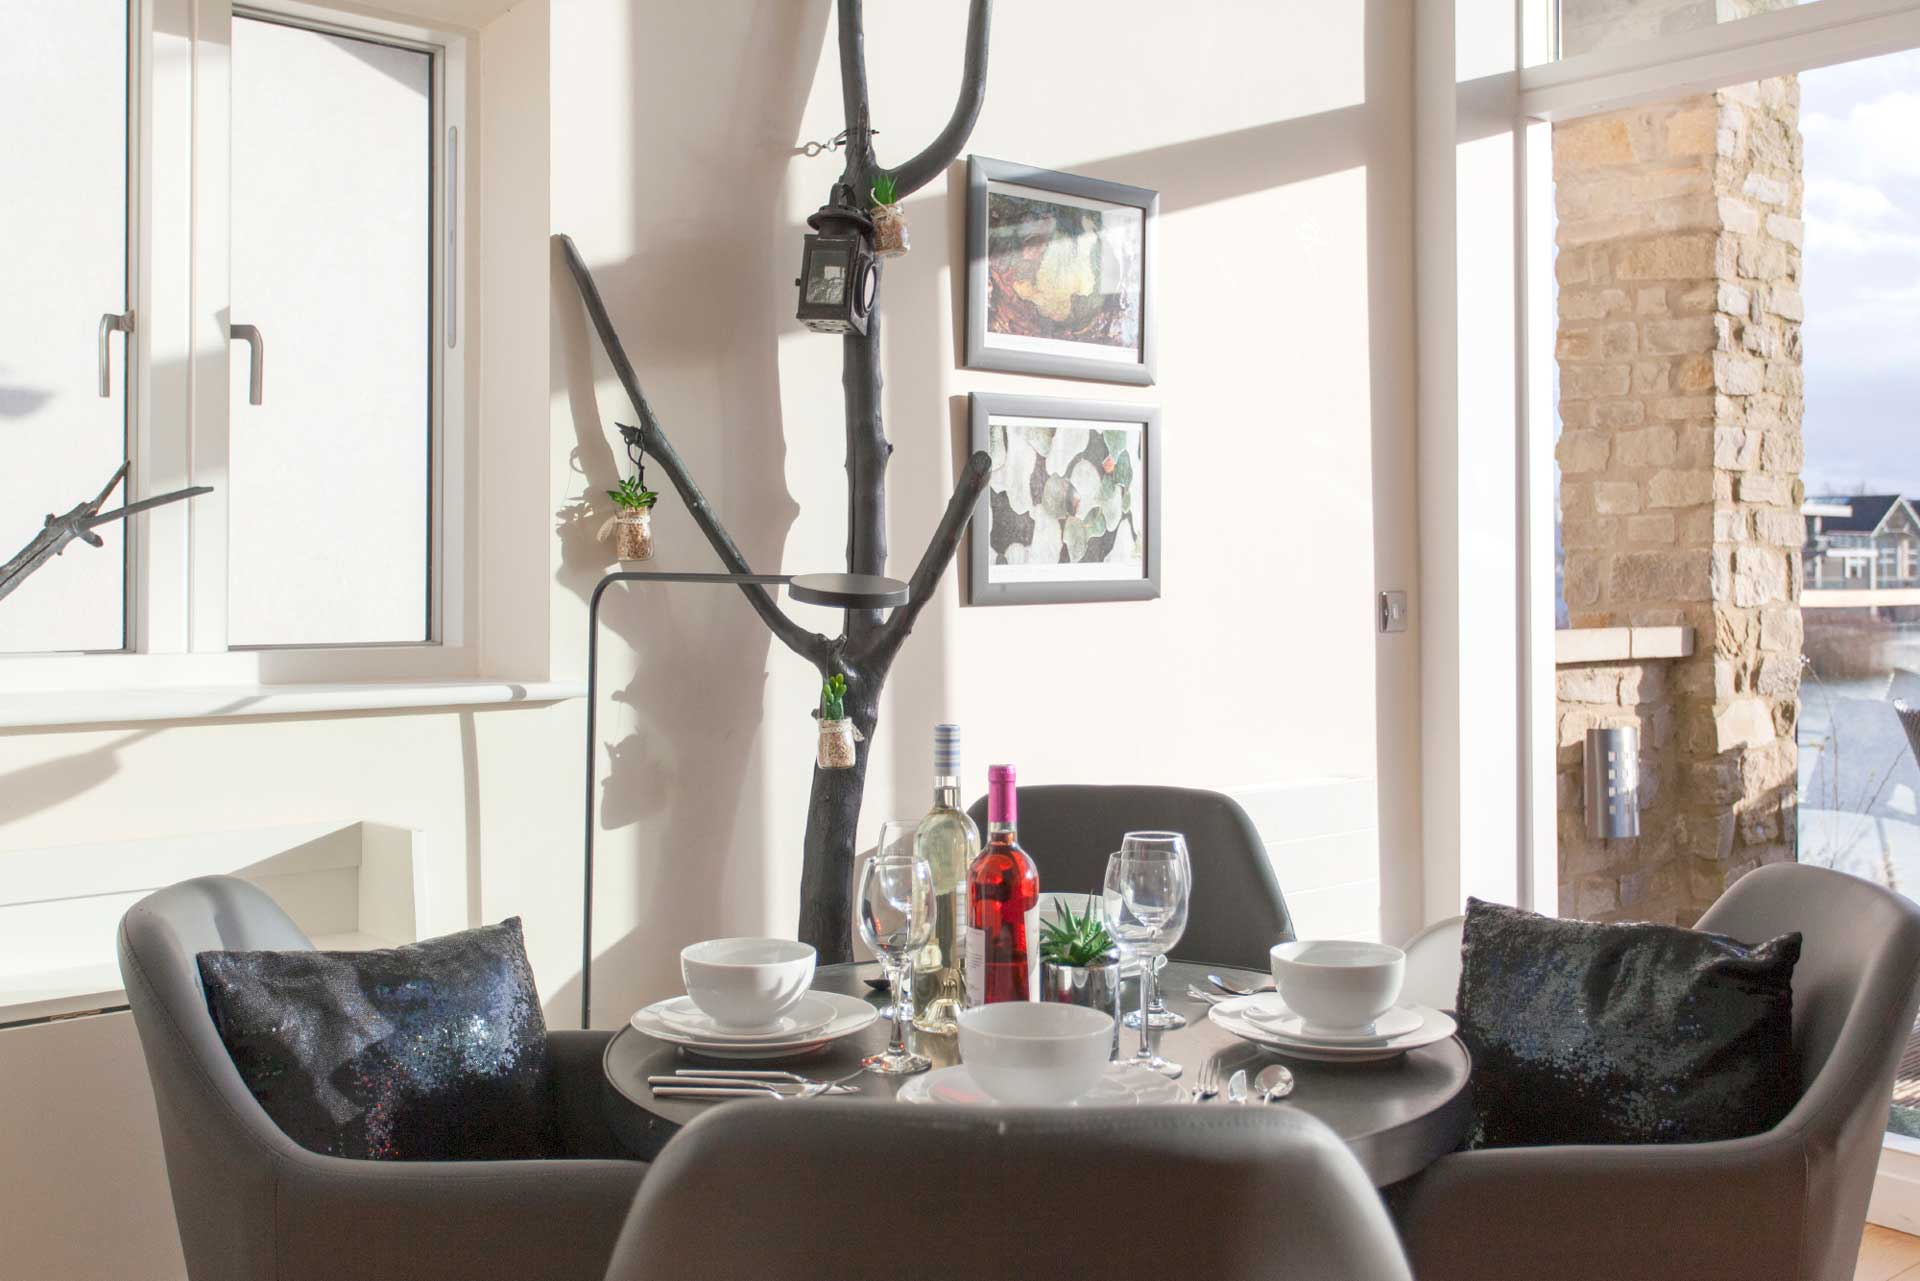 Howells-Mere-3-Lower-Mill-Estate-Rentals-Dining-Area-2a